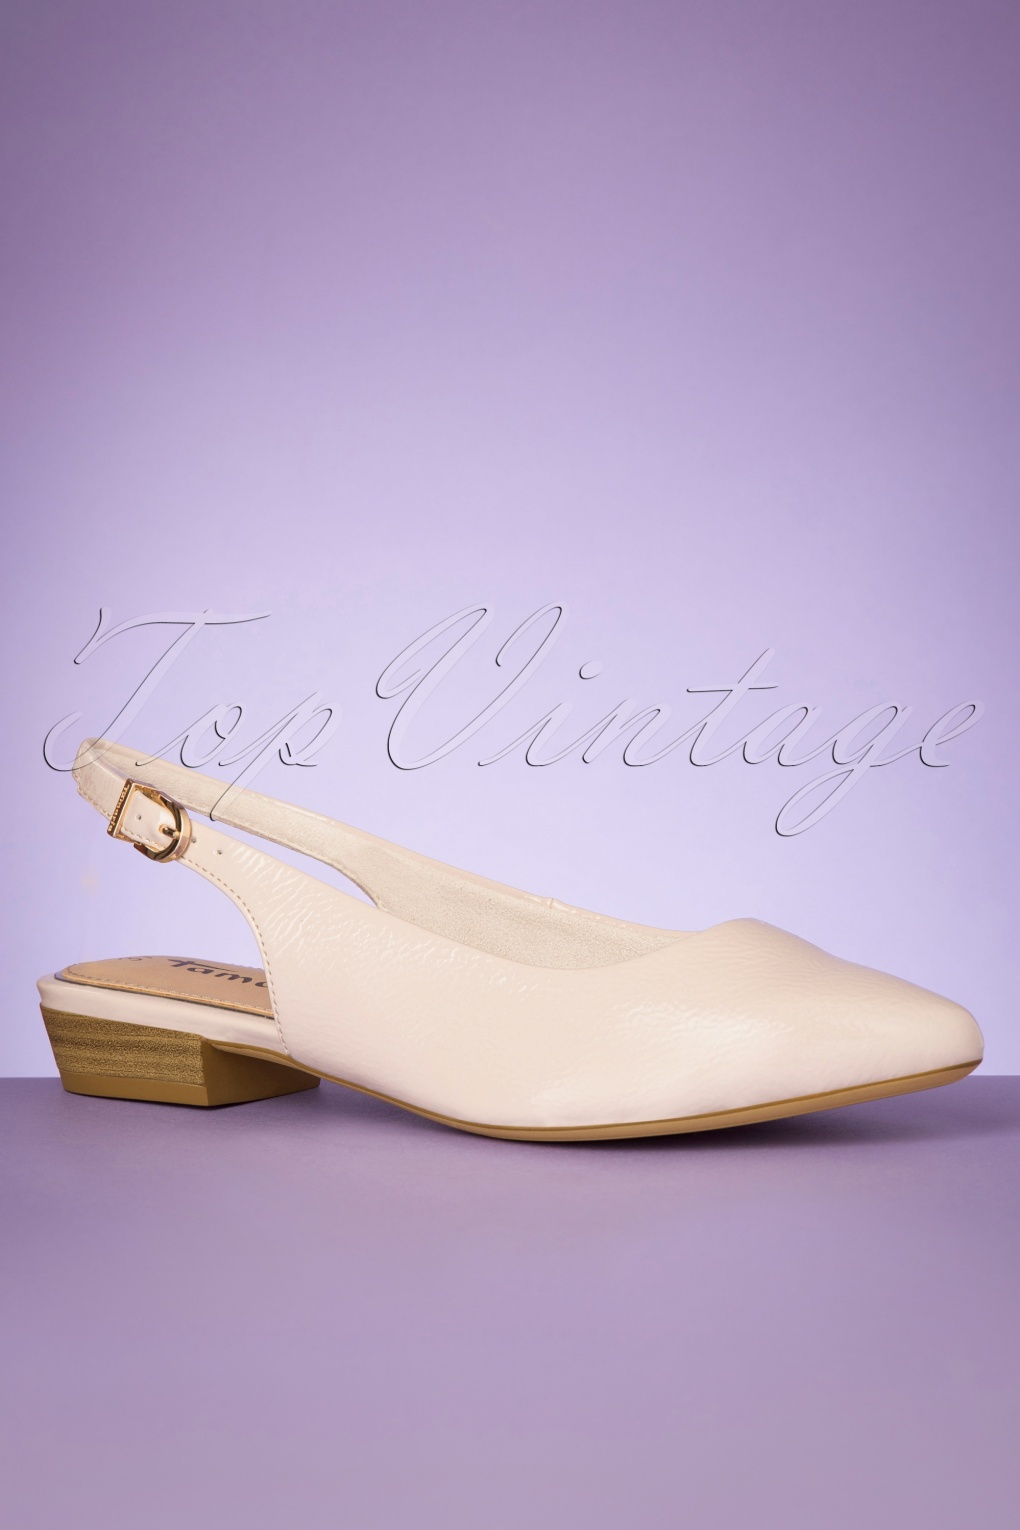 60s Fancy Dress and Quality Clothing 1960s UK 50s Josie Patent Slingback Flats in Ivory £24.95 AT vintagedancer.com